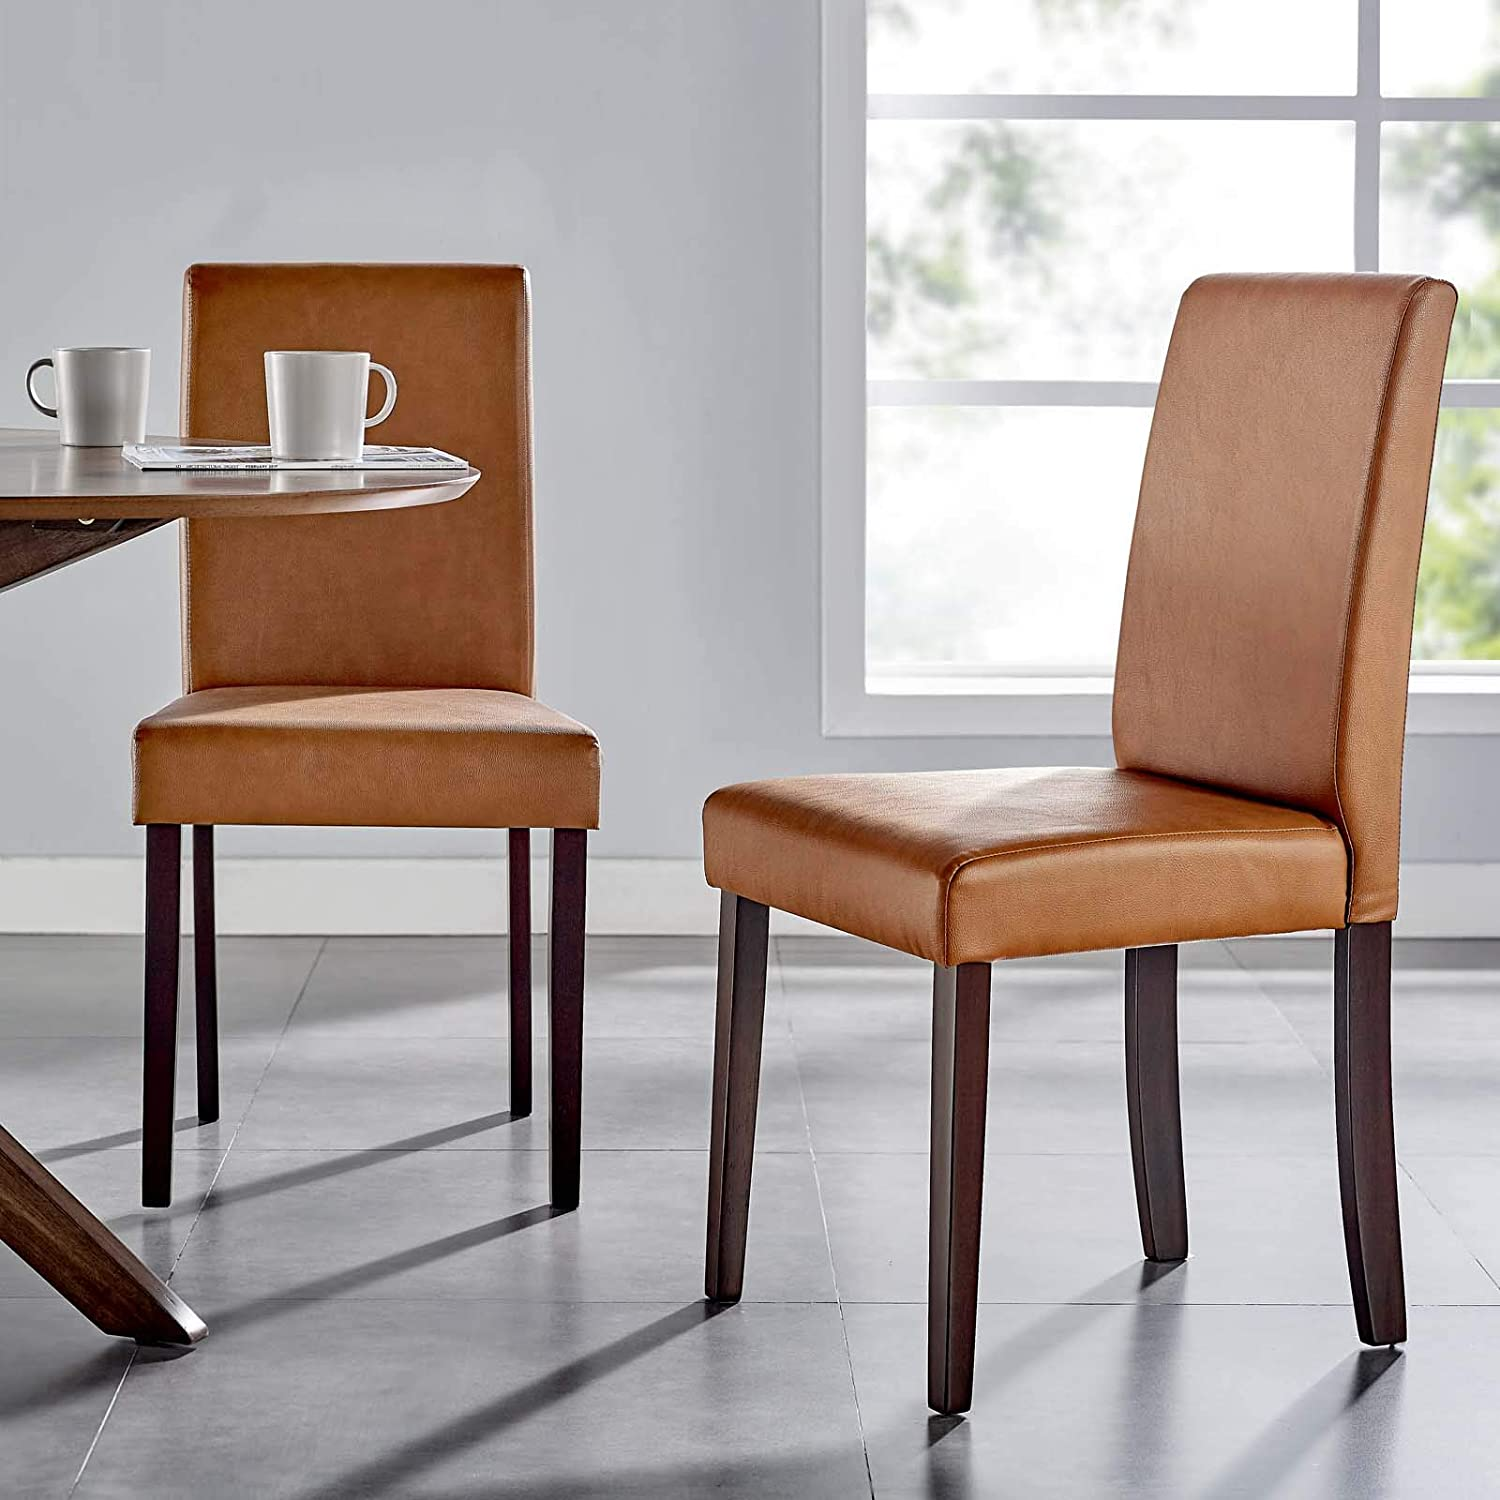 tall-backrest-upholstered-parsons-dining-chair-standard-traditional-legs-cognac-vegan-leather-fabric